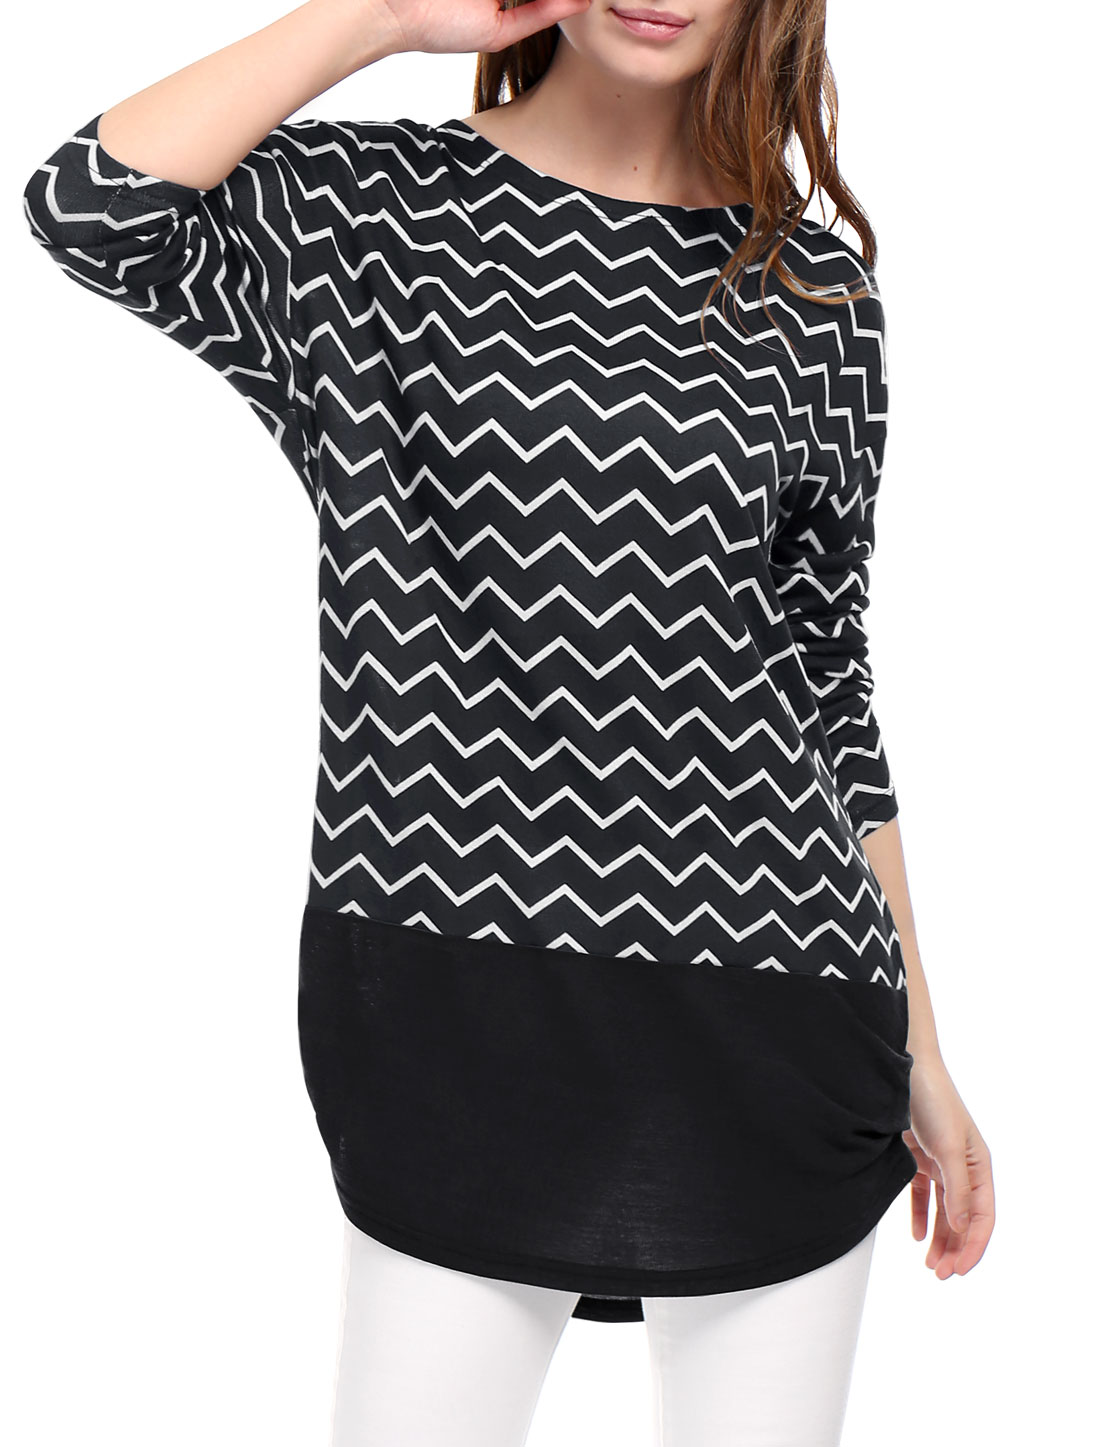 Women Long Sleeves Ruched Sides Chevron Loose Tunic Top Black L